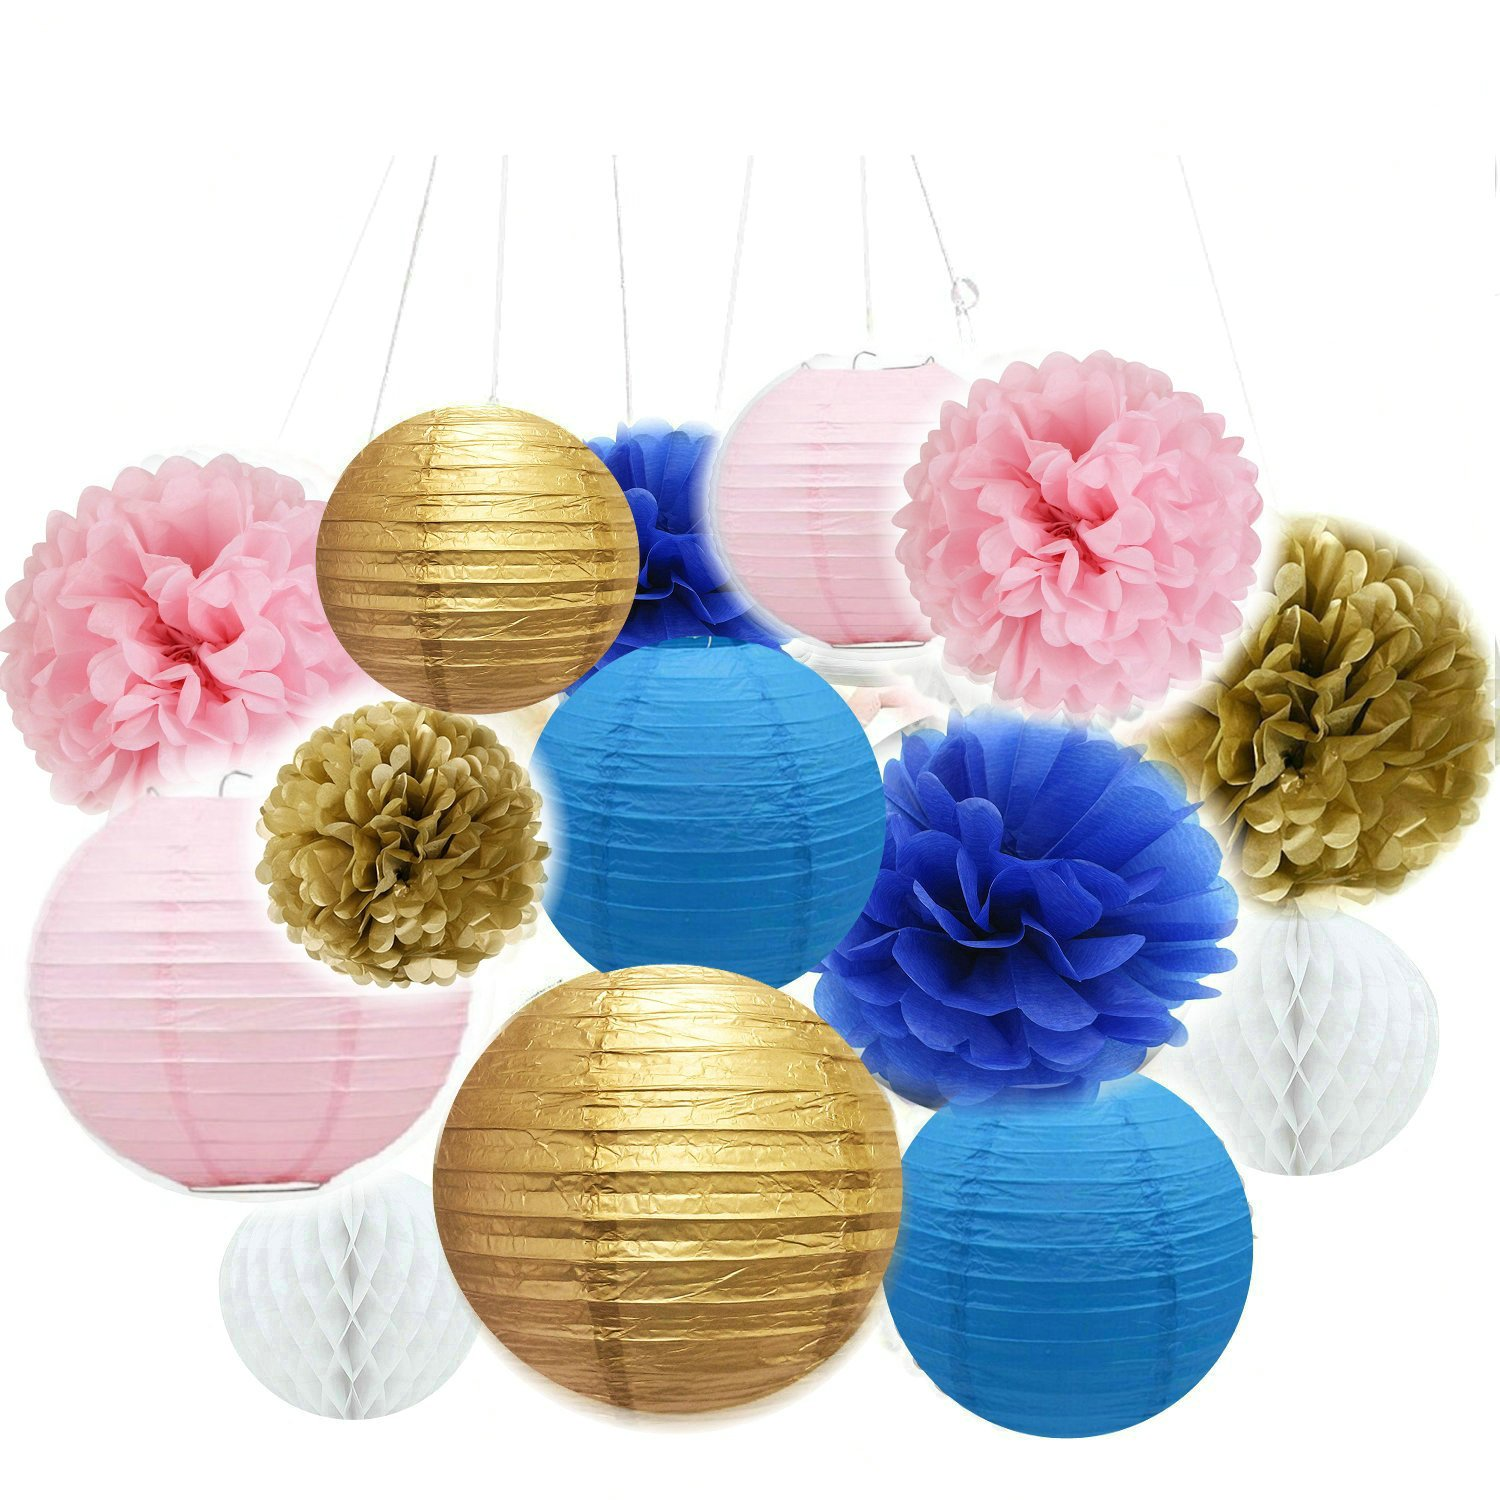 Fascola 14 Pcs Mixed Navy Blue Pink Gold Party Tissue Pom Poms Hanging Paper Lantern Ball Nautical Themed Wedding Birthday Girl Baby Shower Nursery Decoration